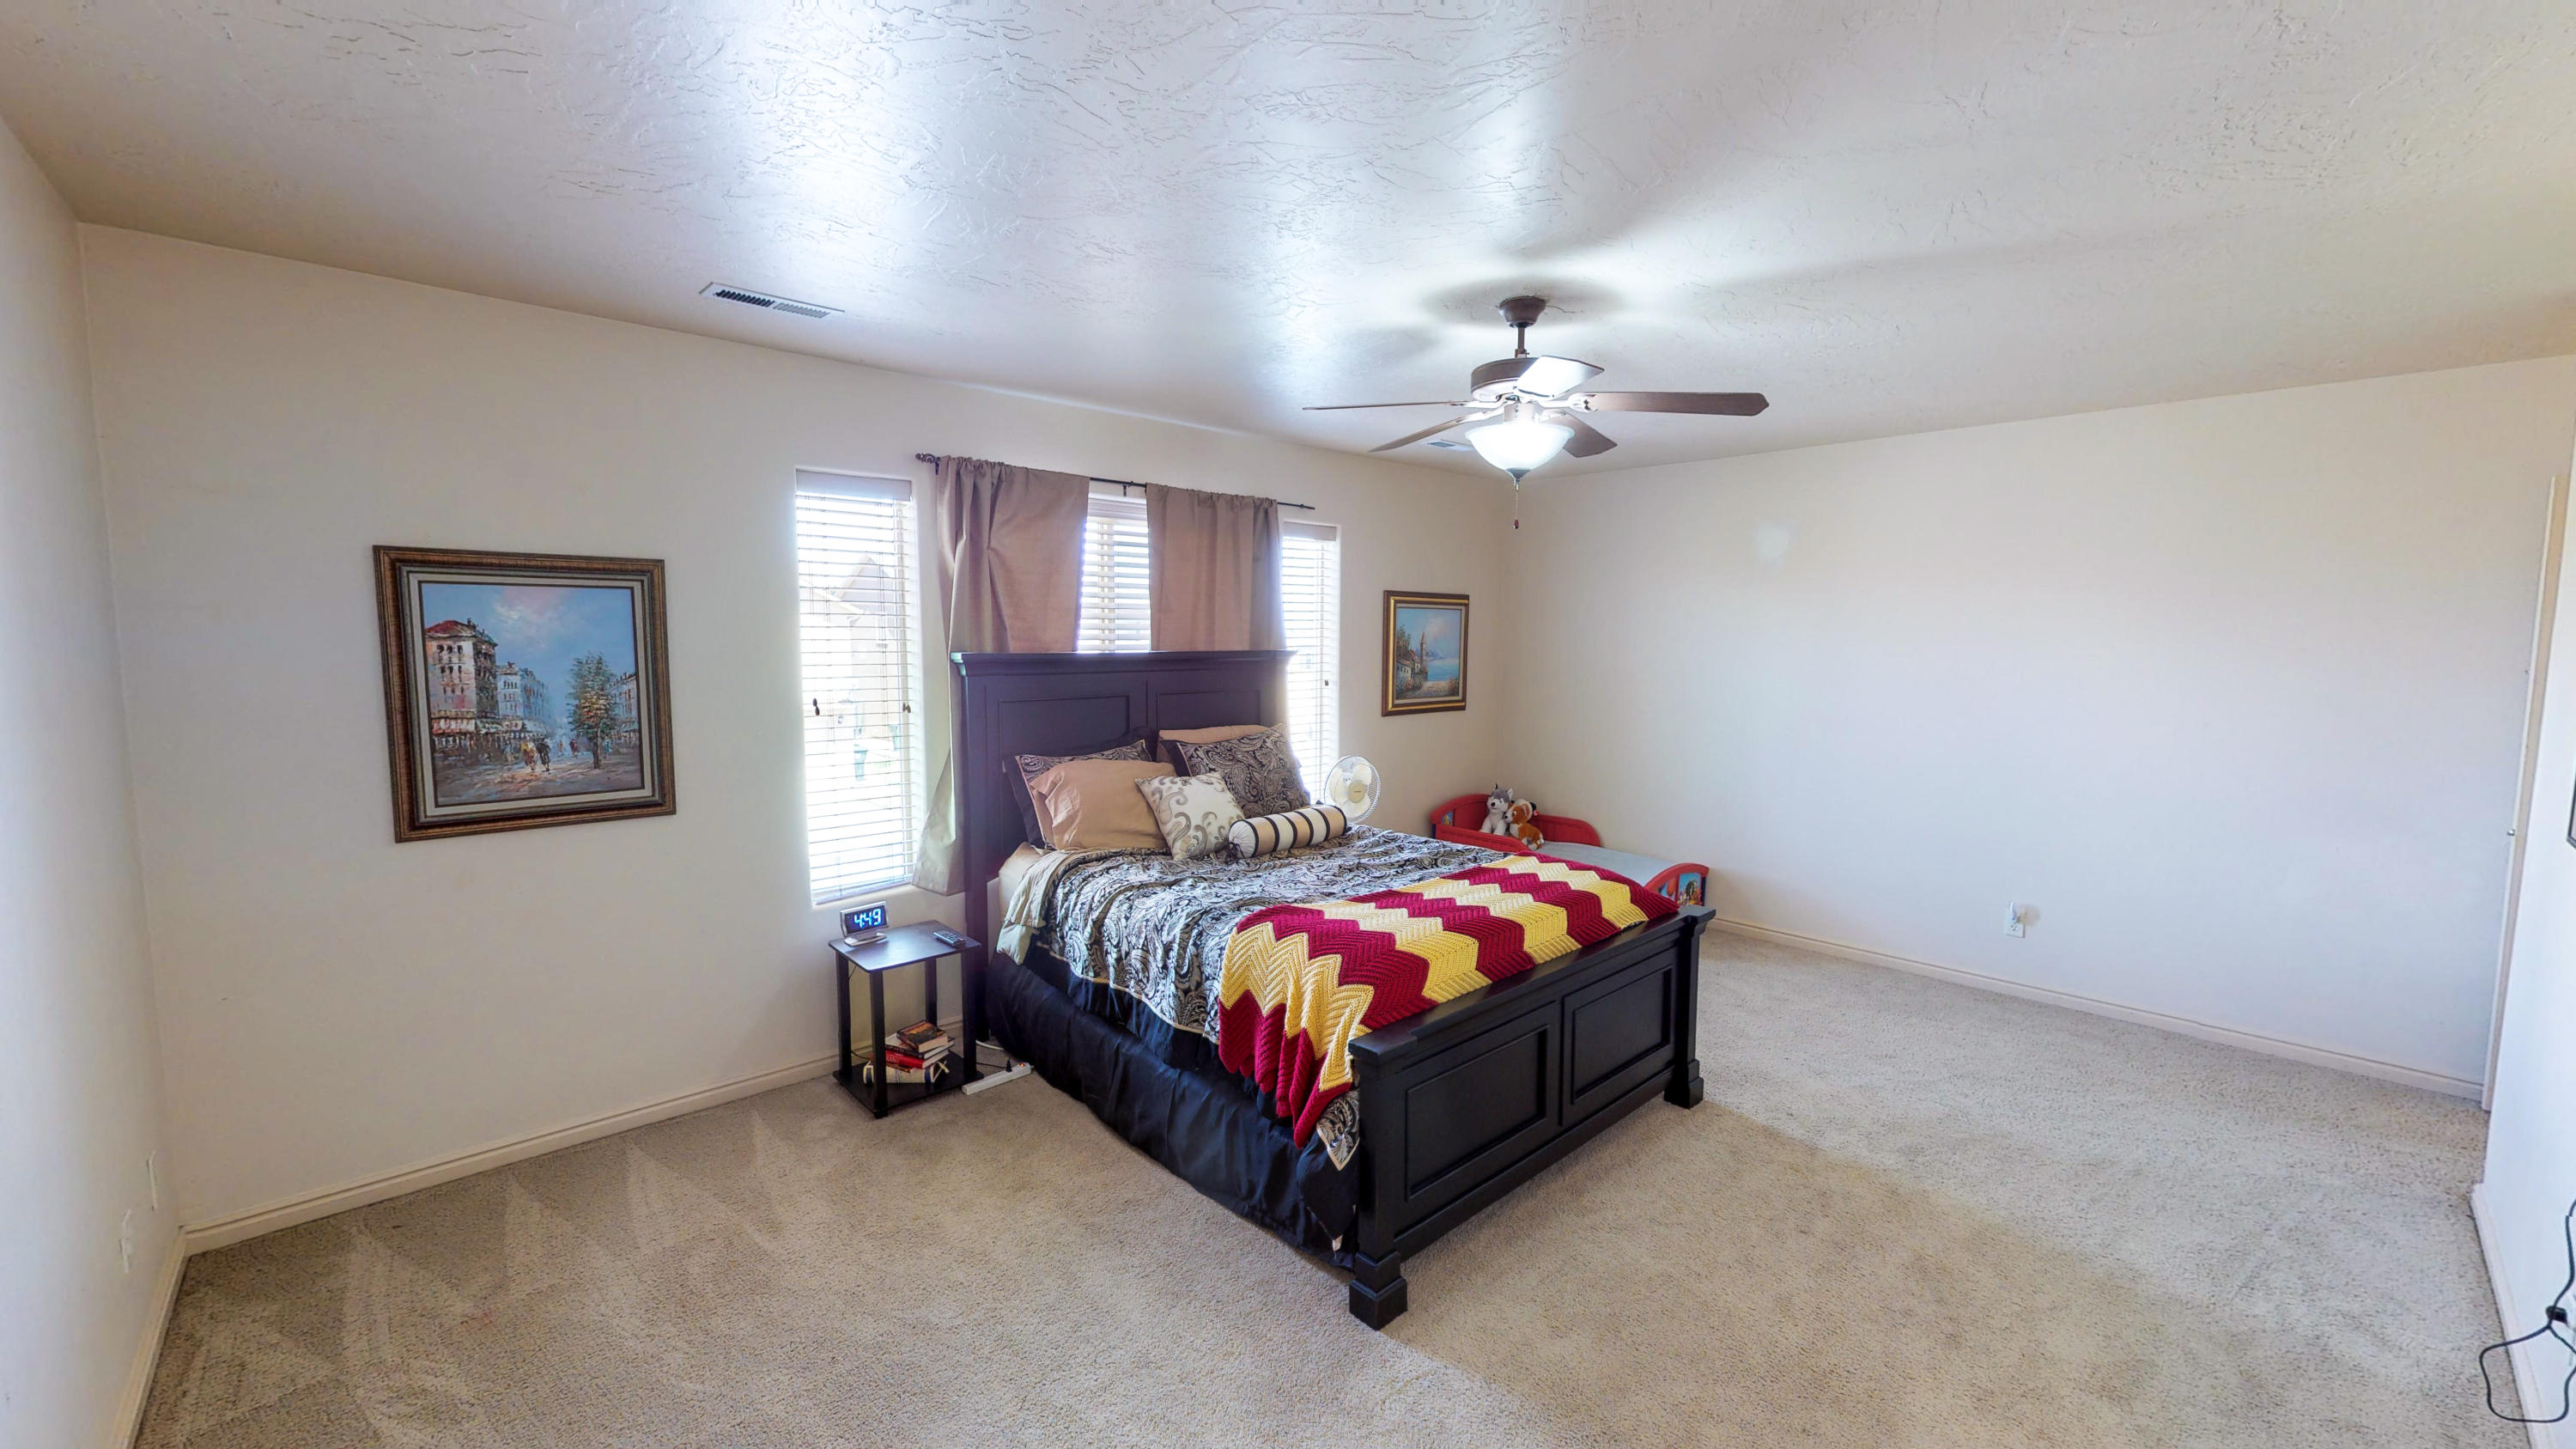 PRICED TO SELL!! Escape the heat and enjoy this great 4 bedrooms, 2.5 bathrooms, home in Enterprise! This home has 2X6 construction, 220 volt hookup in the 2 car garage, jetted tub, central A/C. HOA covers snow removal, road repairs and street lights. It\